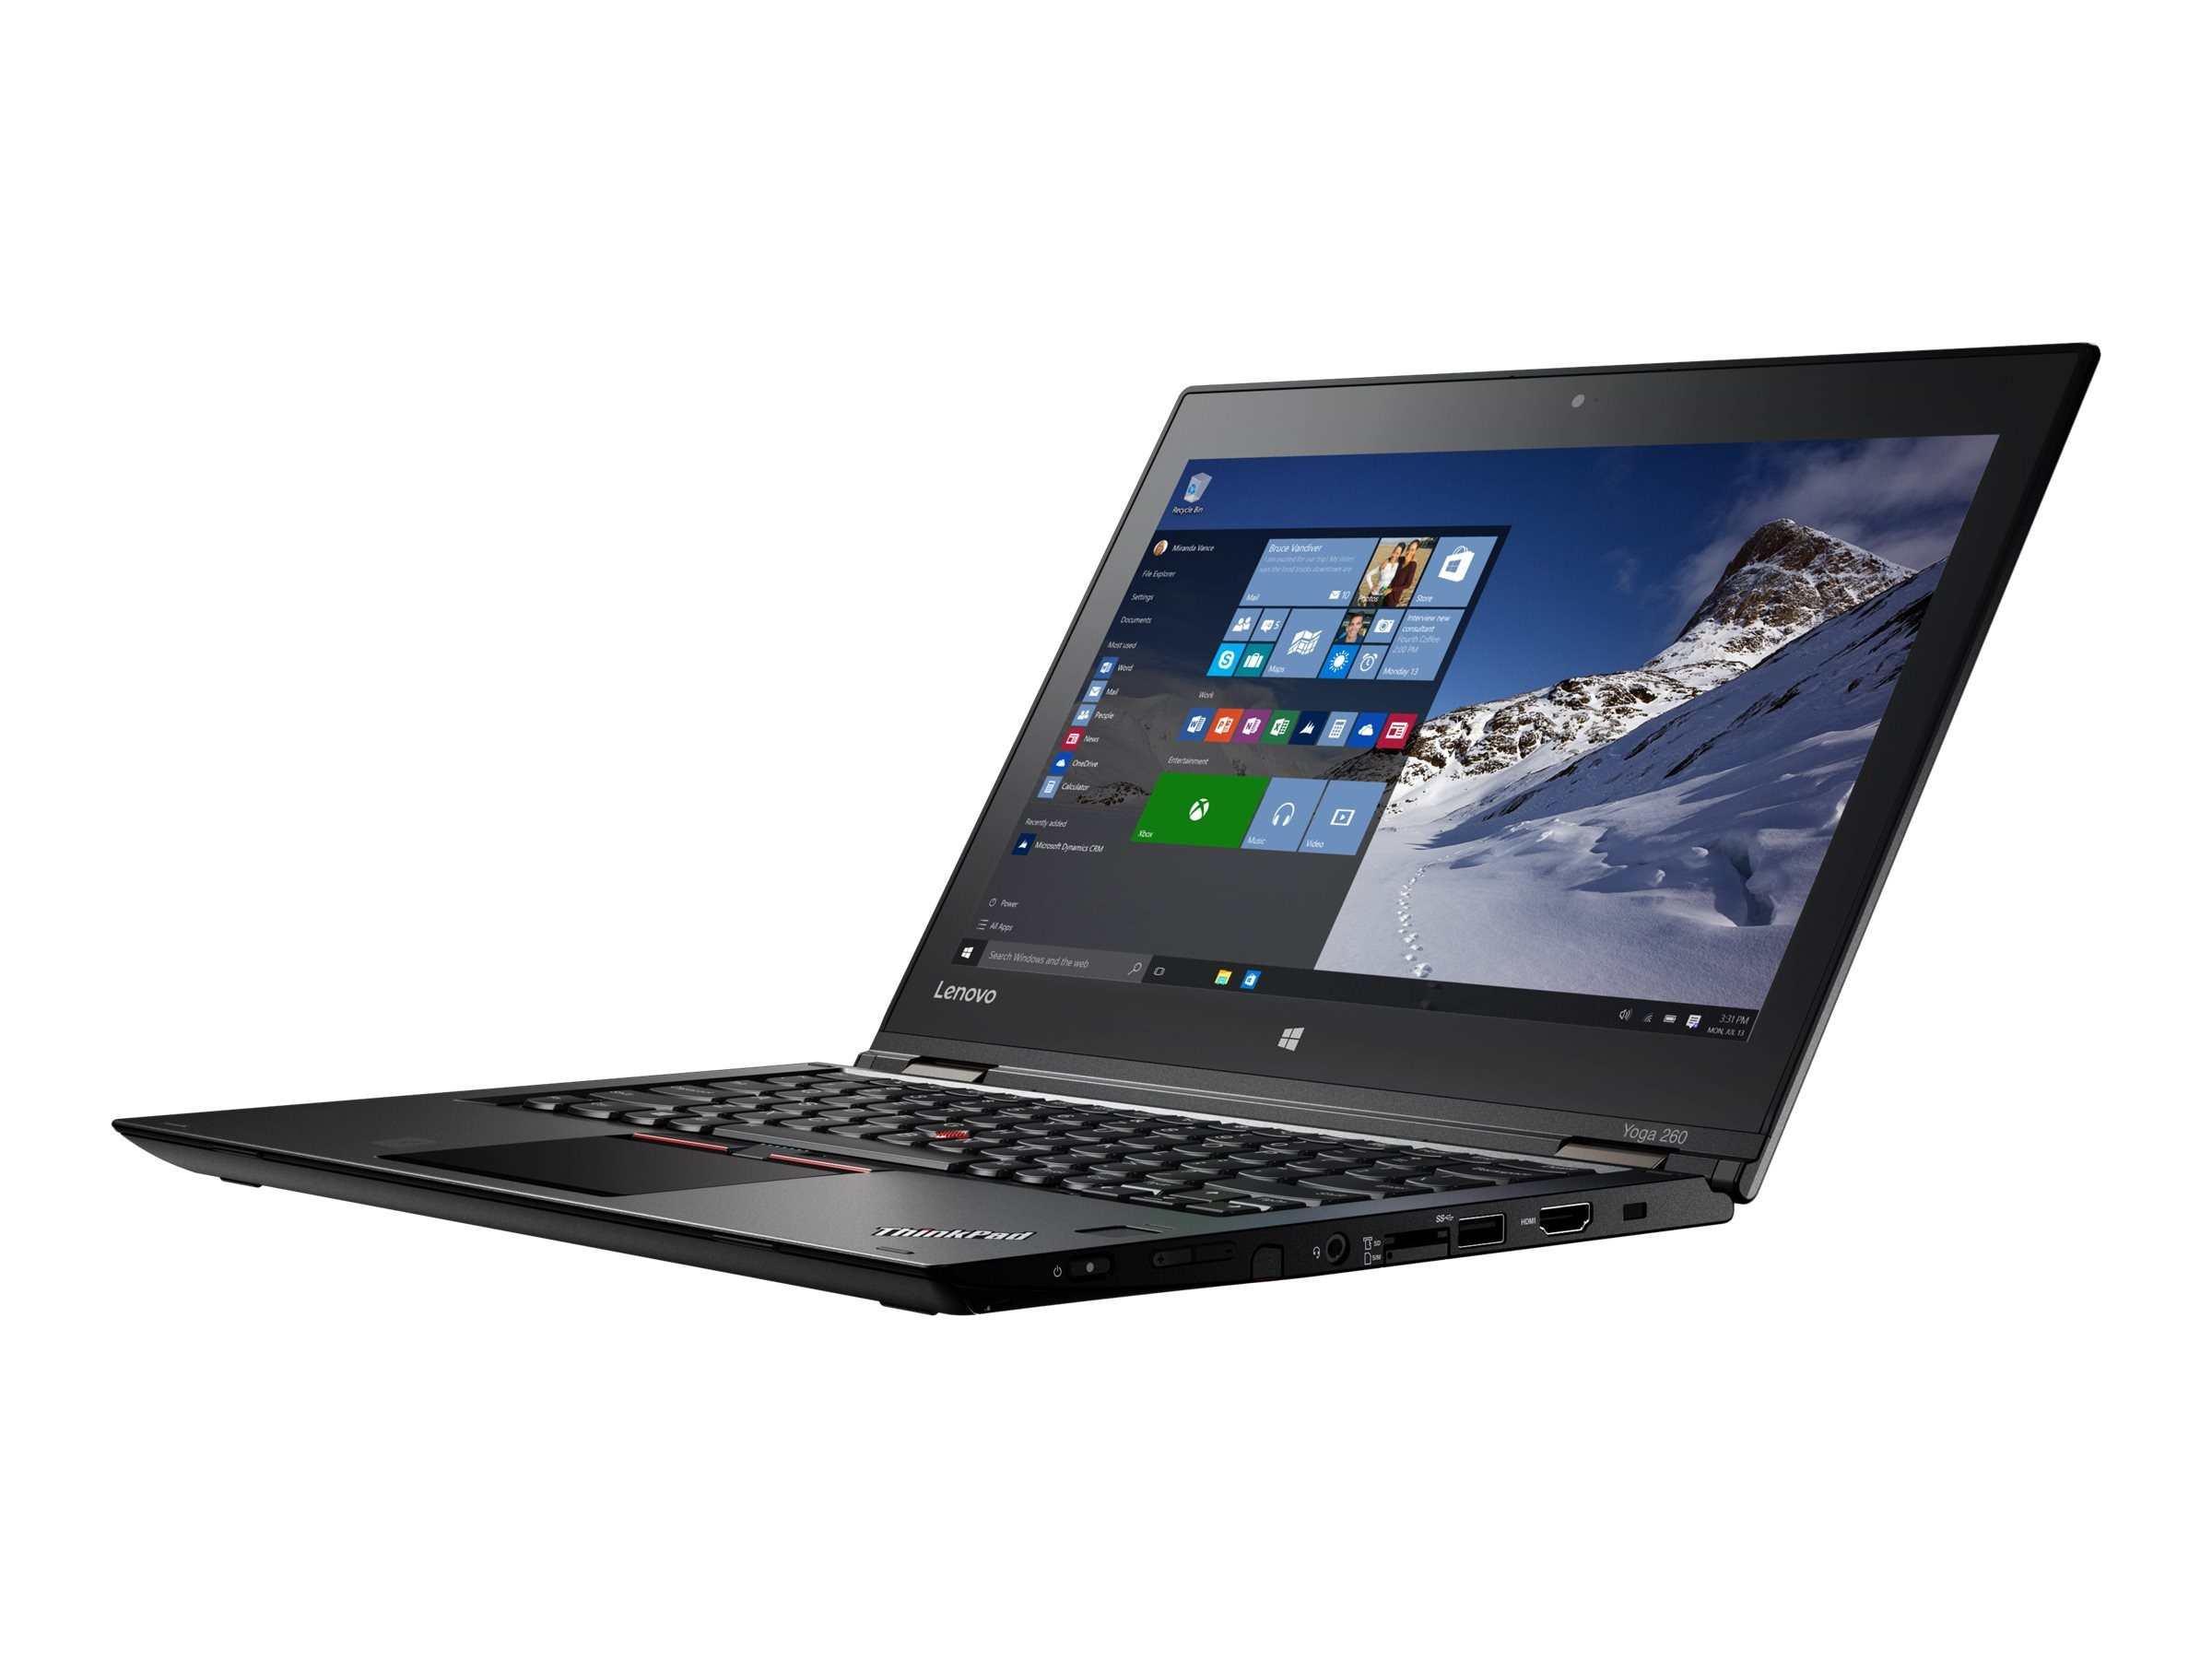 Lenovo TopSeller ThinkPad Yoga 260 Core i7-6500U 2.5GHz 8GB 256GB OPAL2 ac BT FR WC 4C 12.5 FHD MT W10P64, 20FD002CUS, 31221295, Notebooks - Convertible